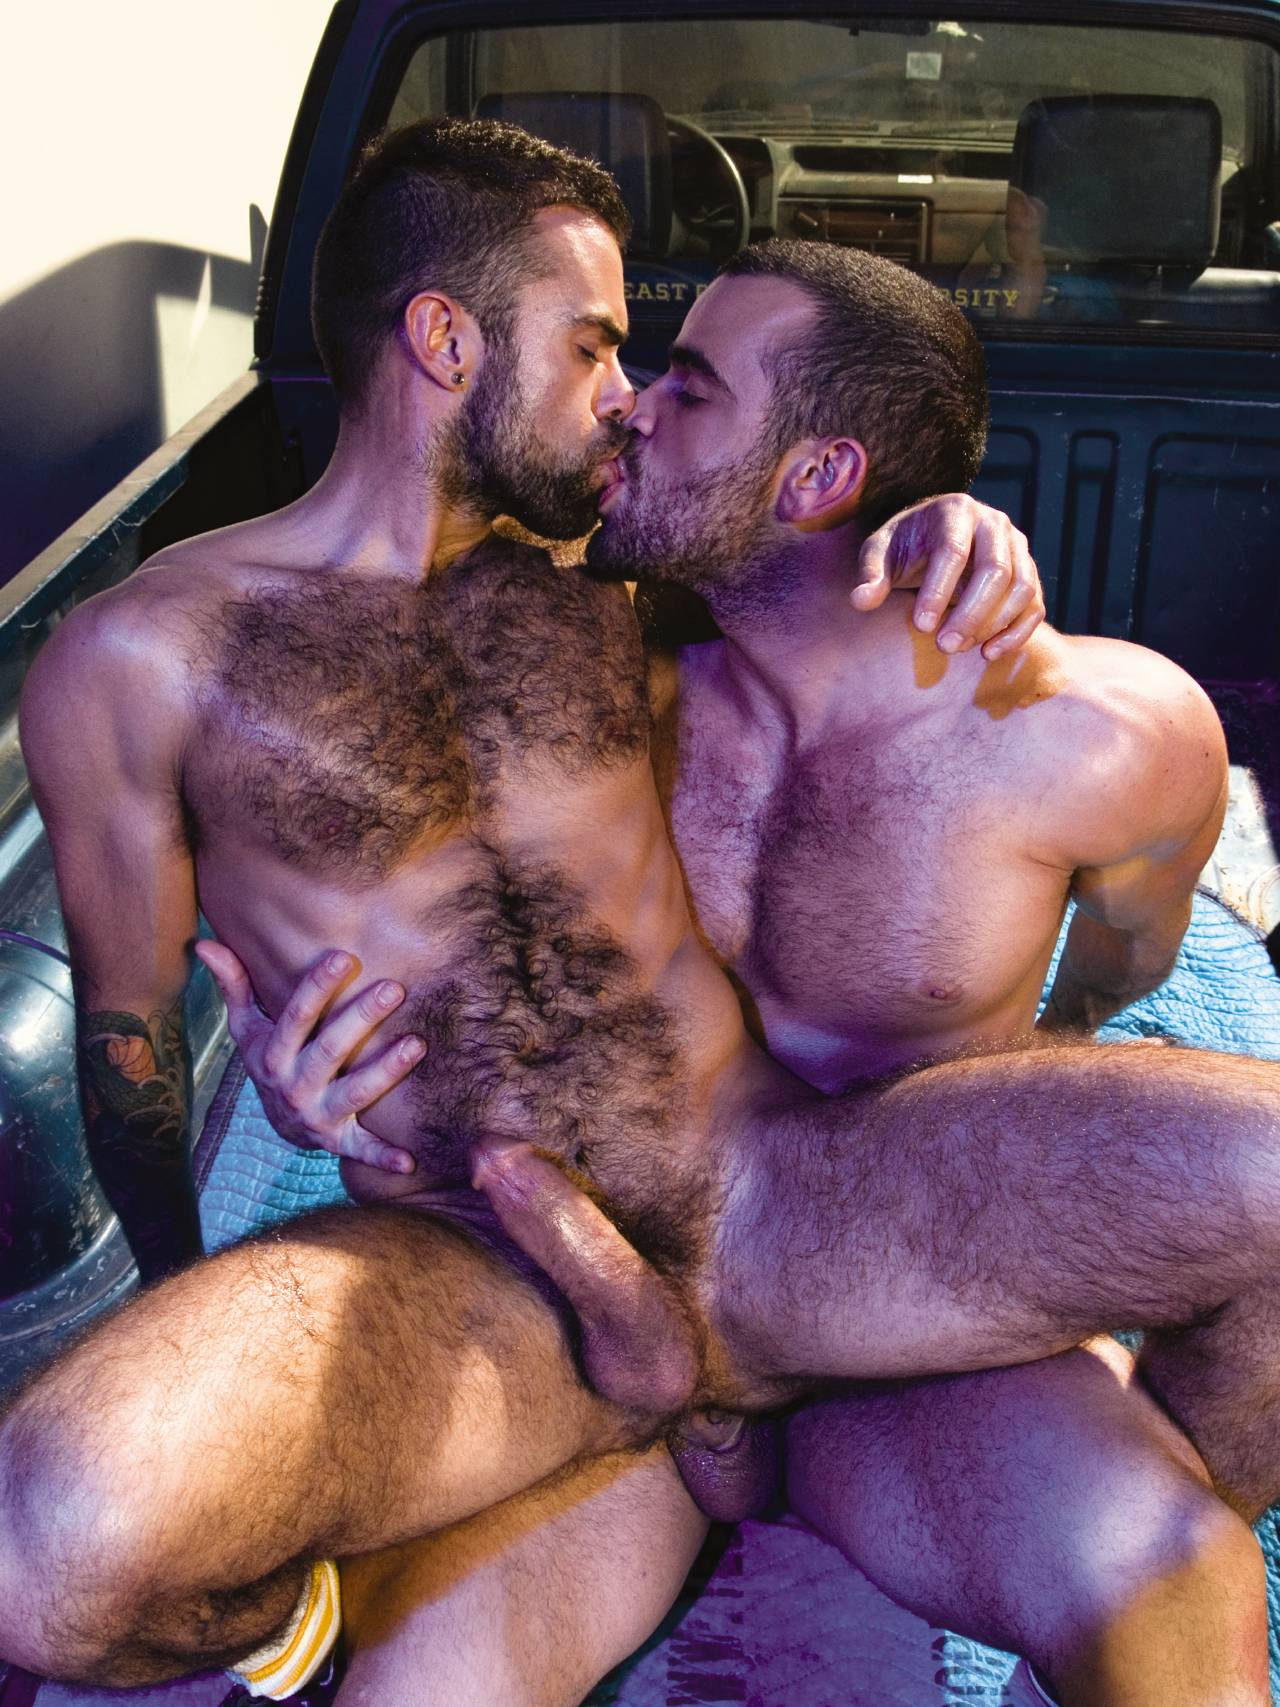 Damien Crosse fuck Steve Cruz gay hot daddy dude men porn Hotter Than Hell